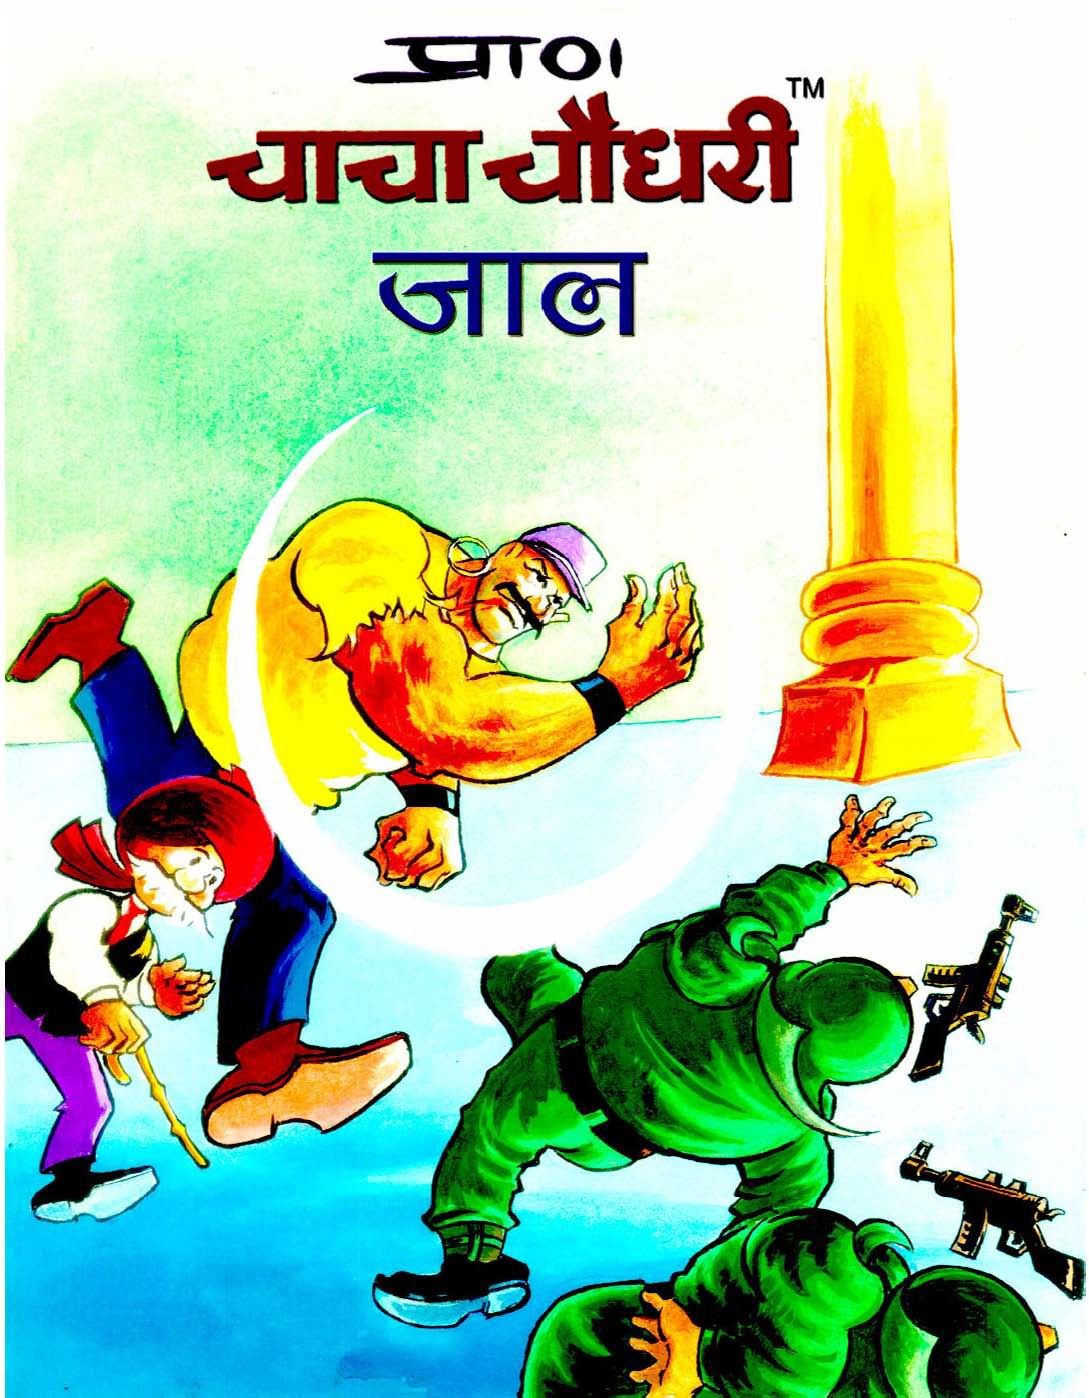 One of the most famous Comic character - Chacha Chaudhary